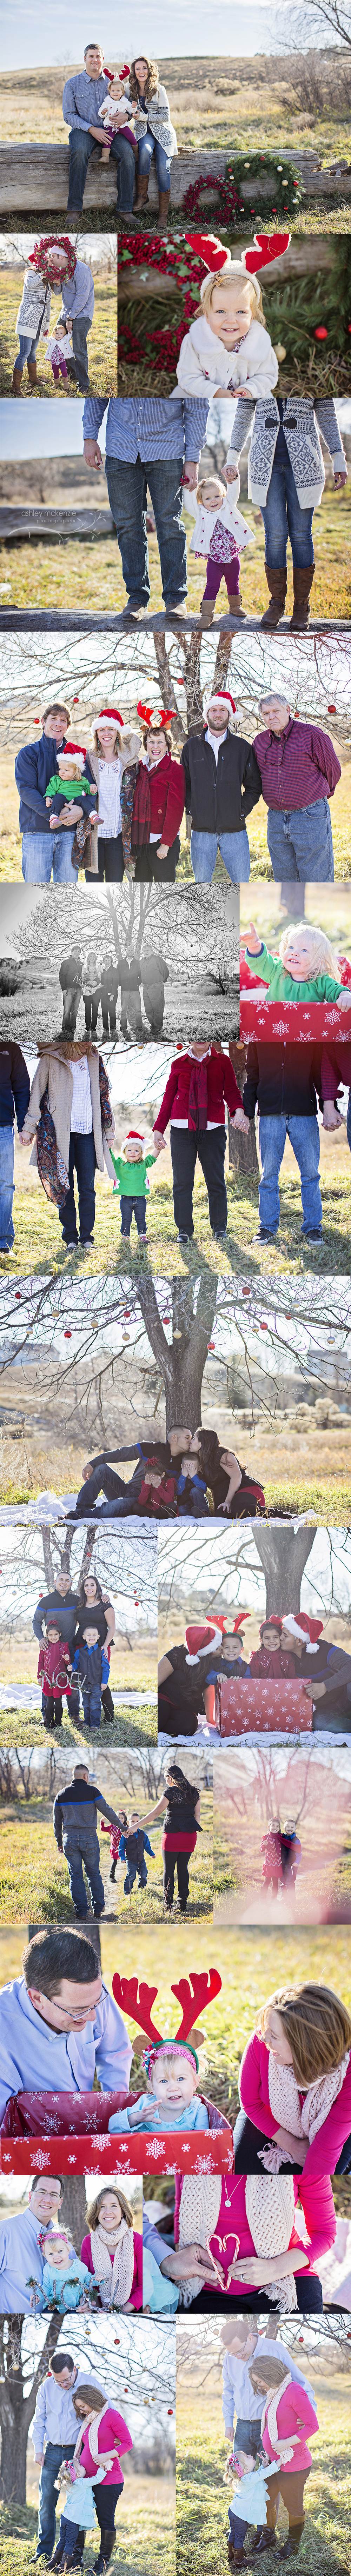 Holiday Photos by Ashley McKenzie Photography in Windsor, CO